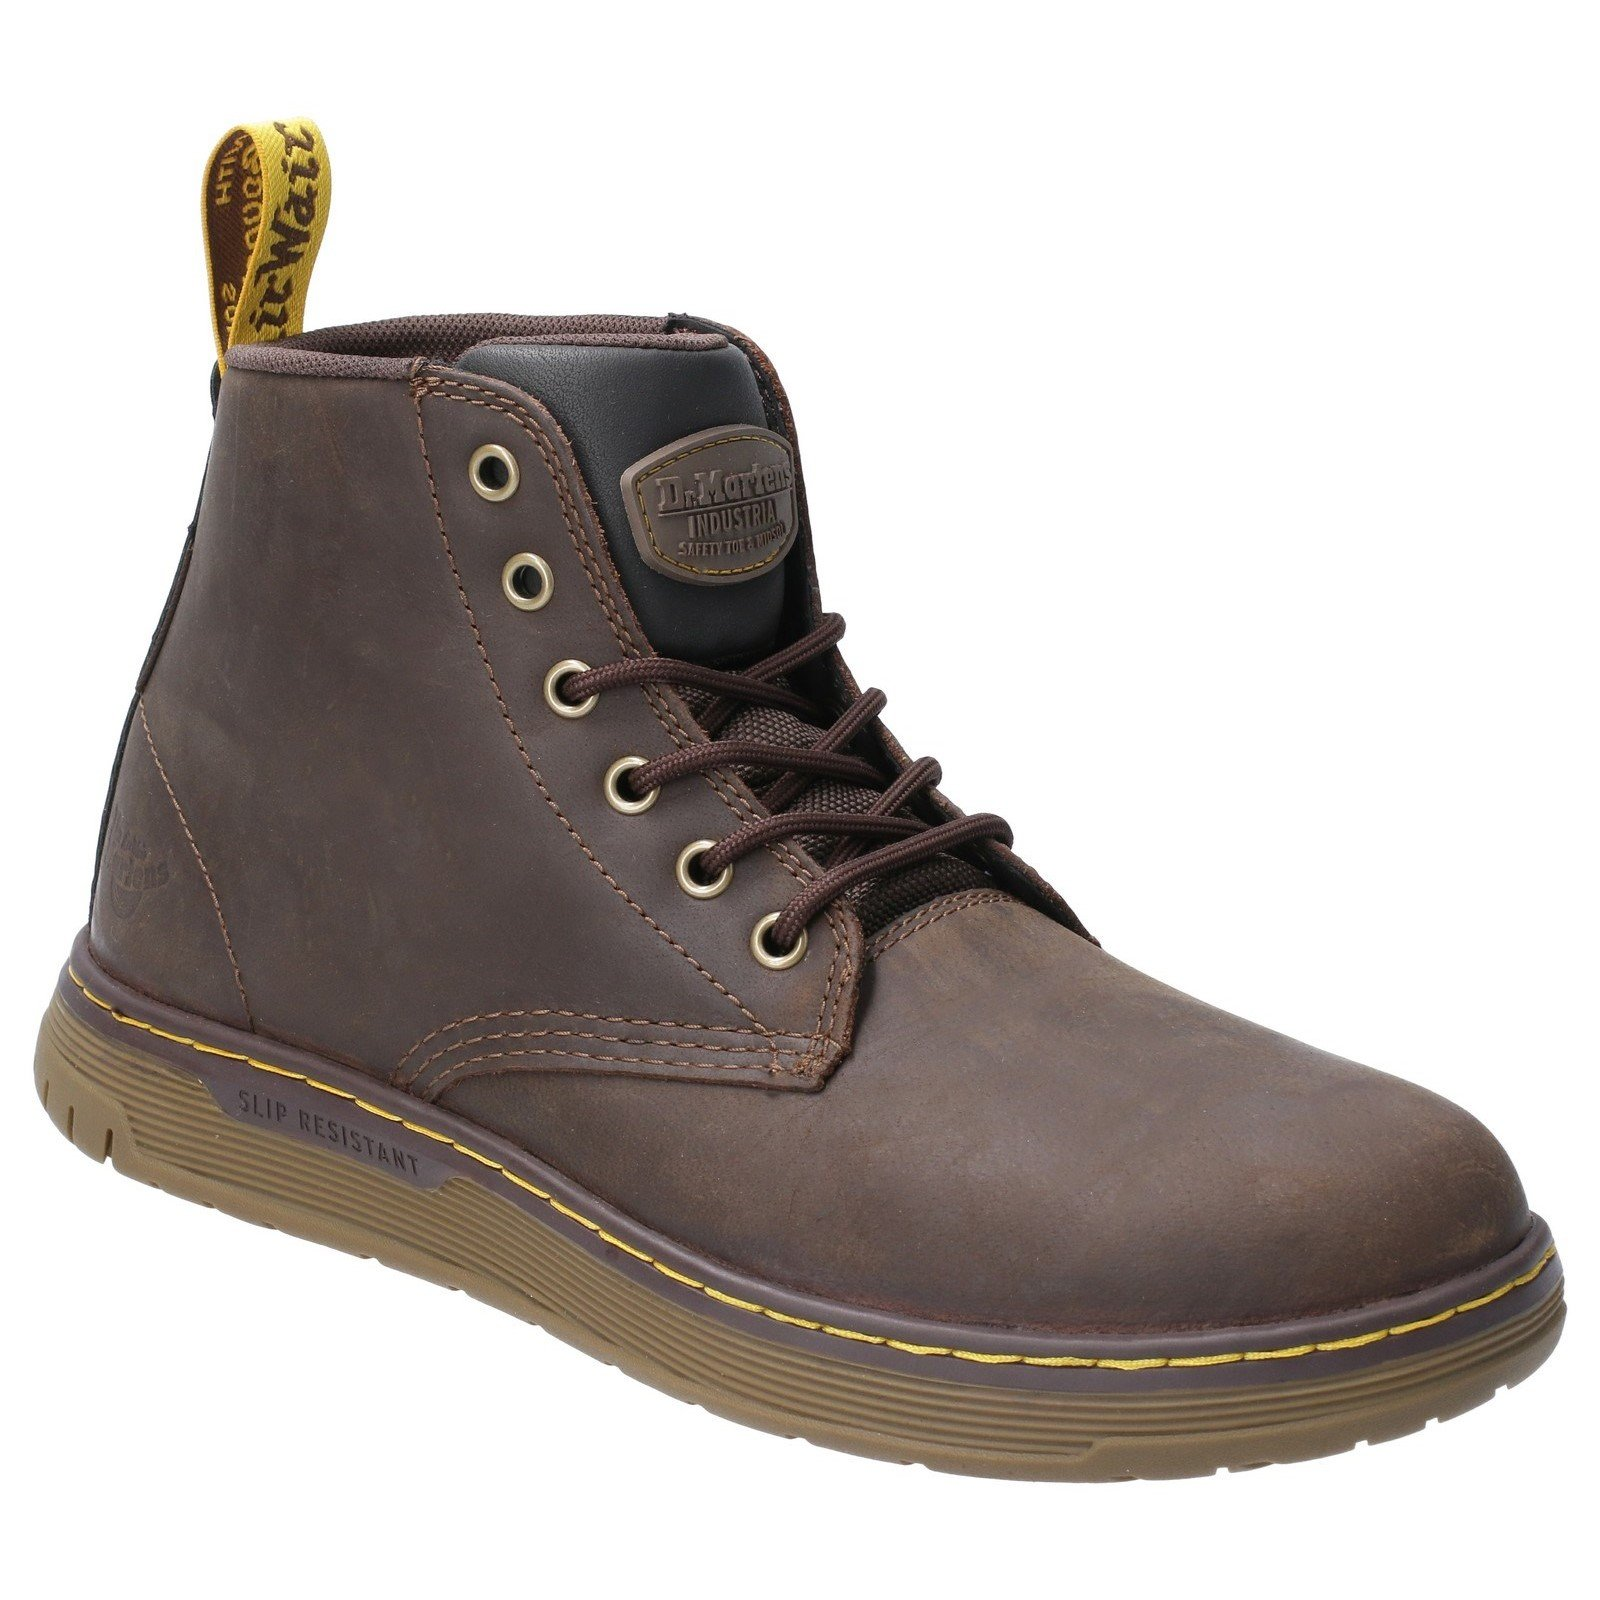 Dr Martens Unisex Ledger Lace Up Safety Boot Brown 29501 - Brown 12